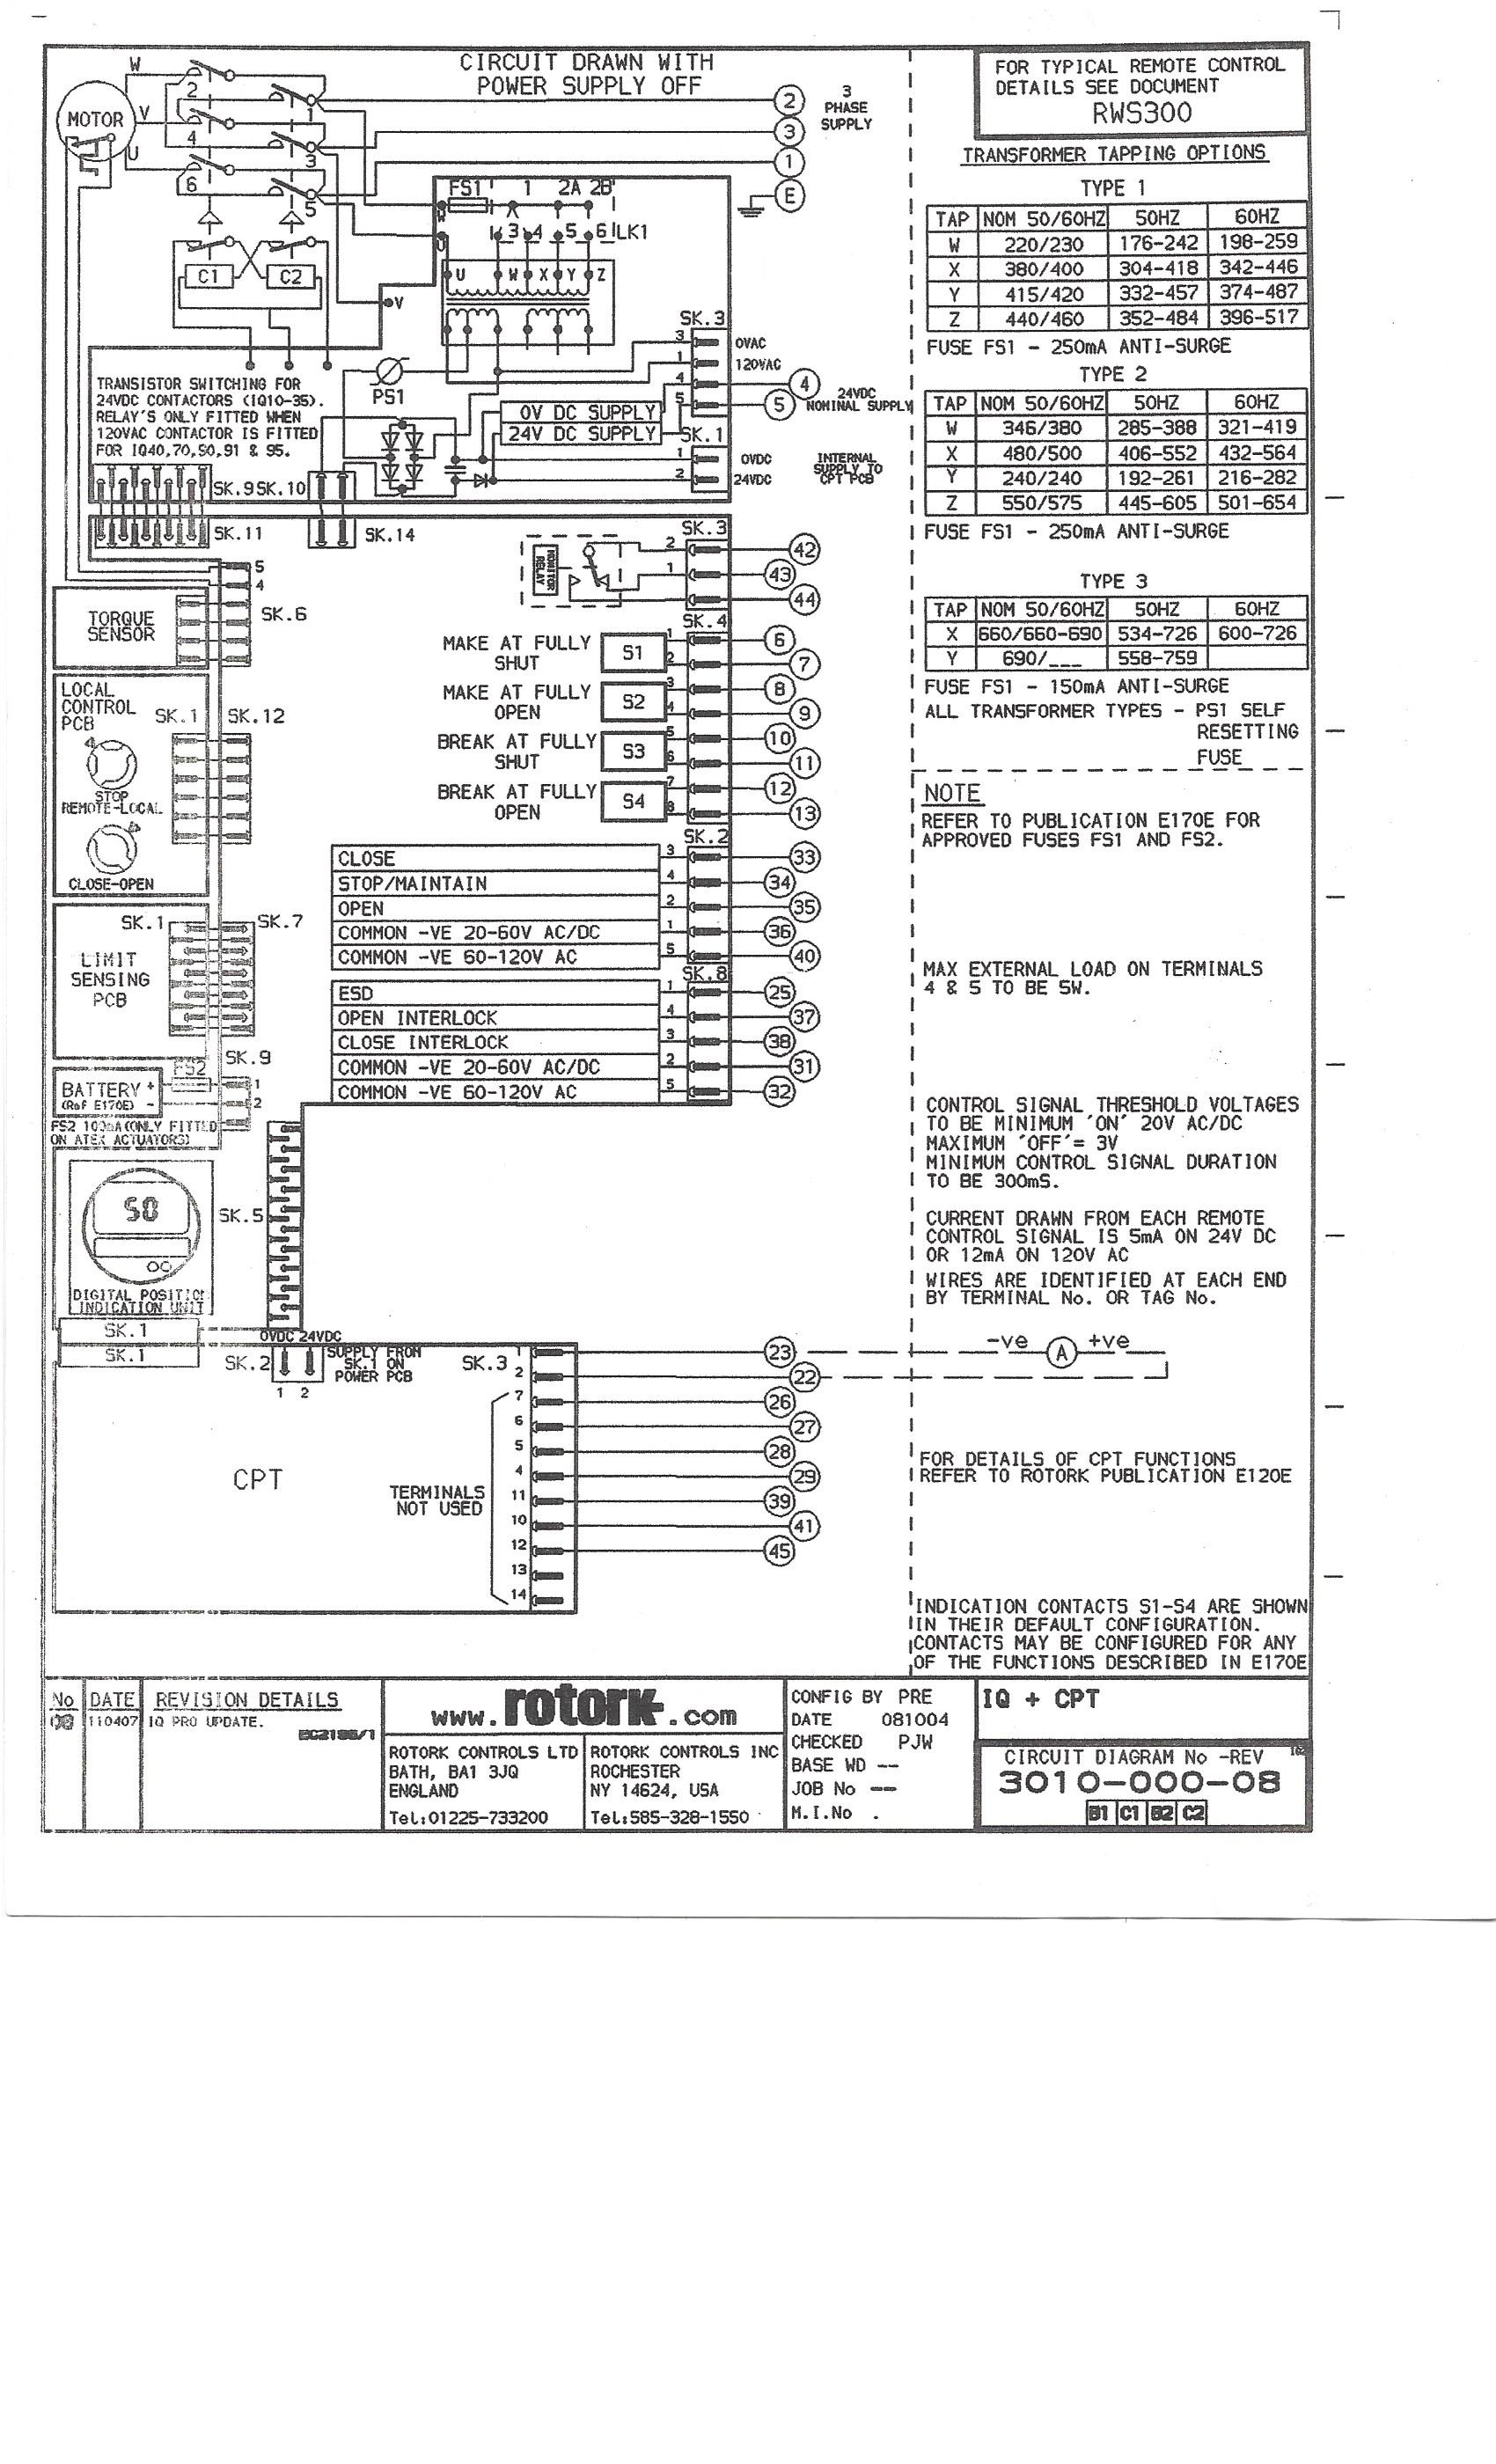 VELAN2 rotork iq wiring diagram siemens wiring diagram \u2022 wiring diagrams rotork iq10 wiring diagram at reclaimingppi.co